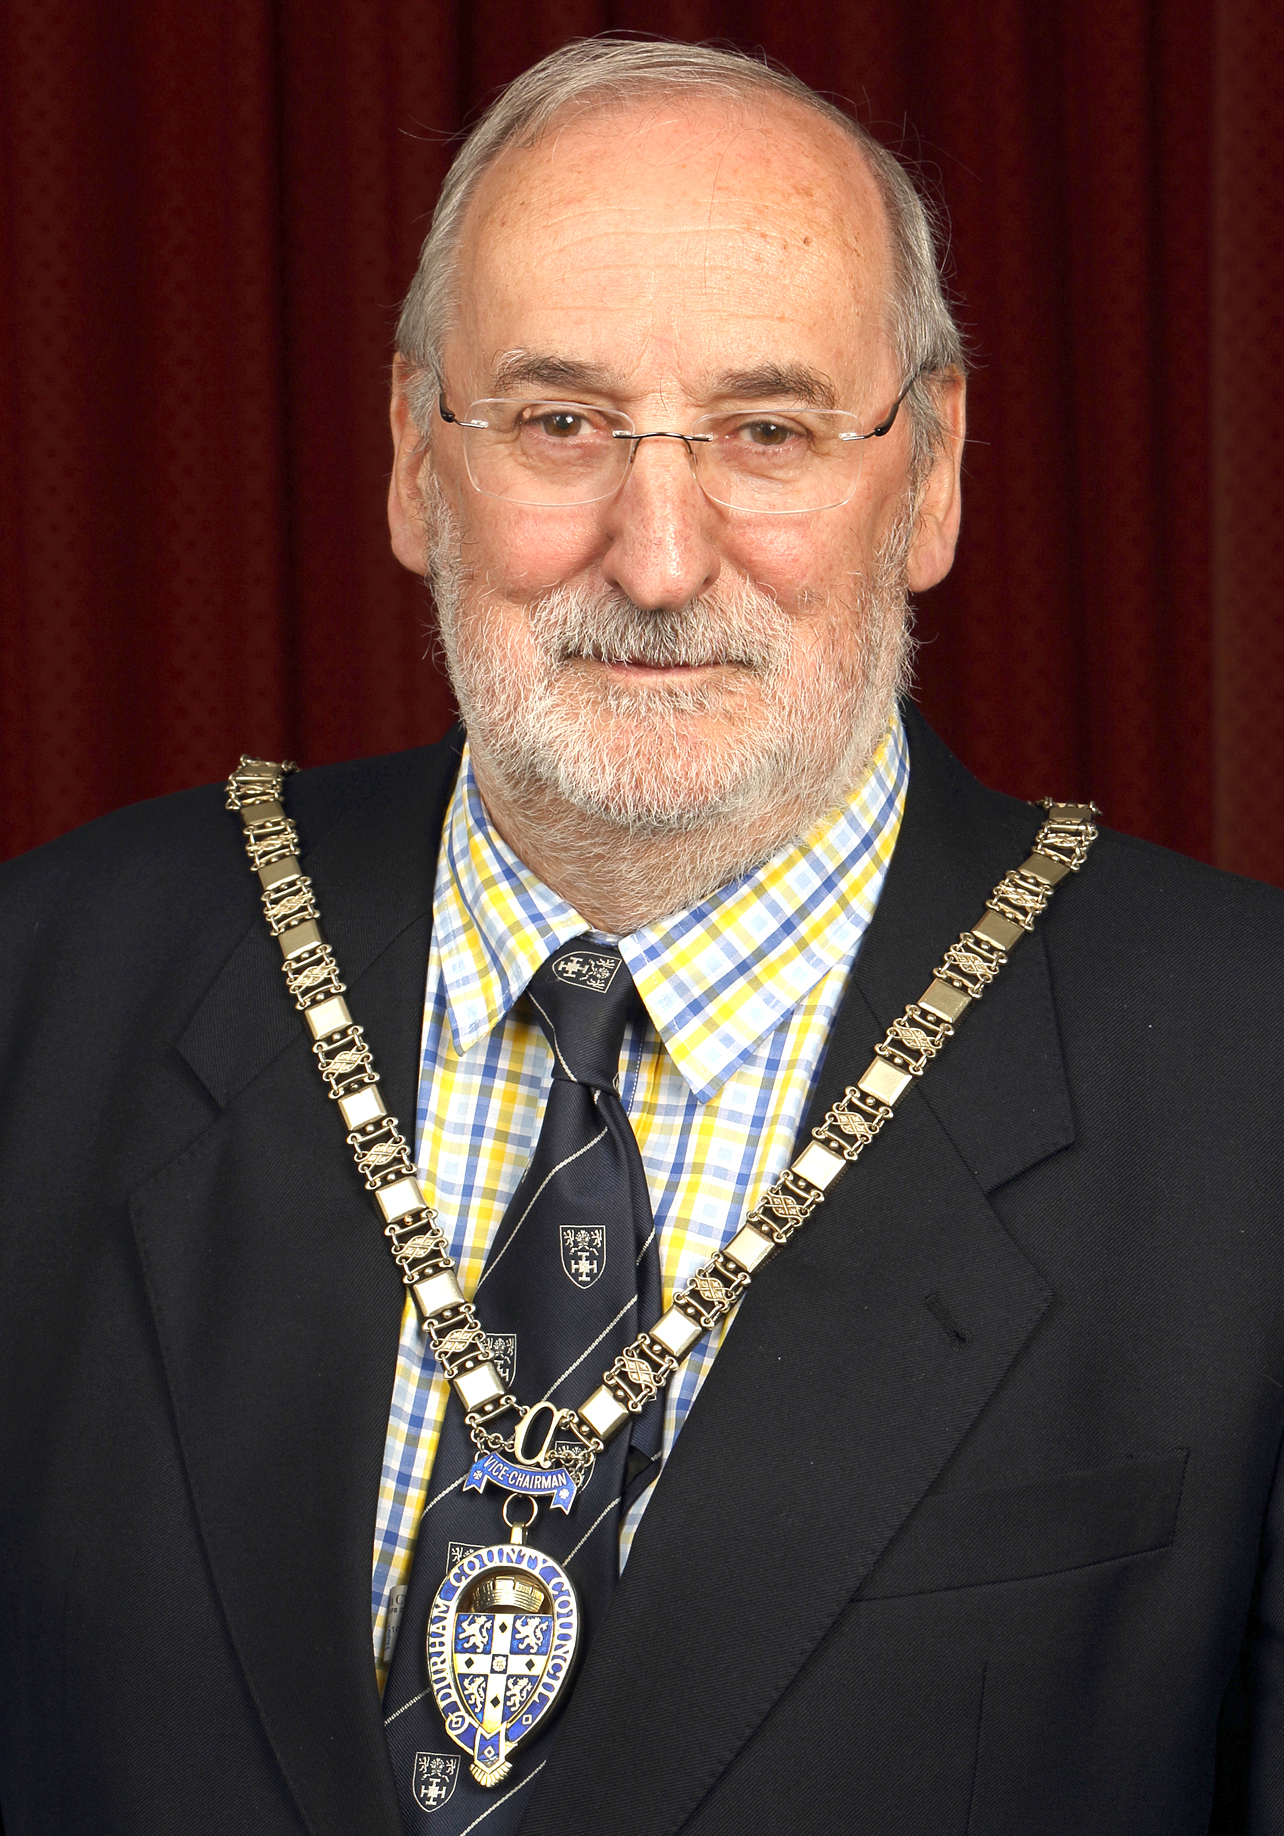 Aycliffe Councillor Elected DCC Vice Chairman